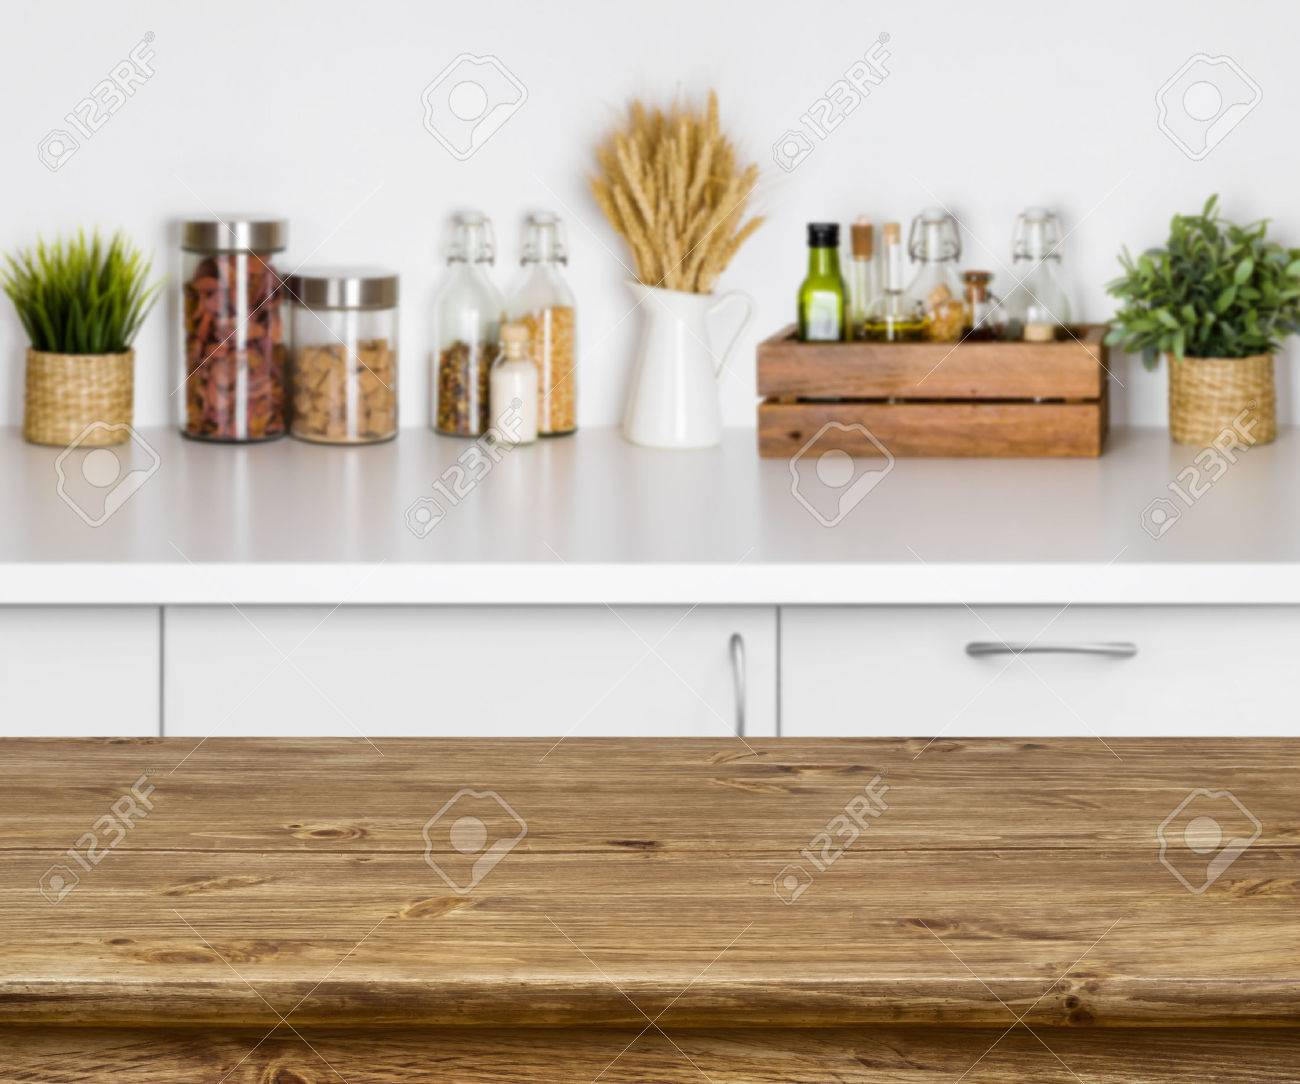 Wooden texture table with bokeh image of kitchen bench interior - 70259730